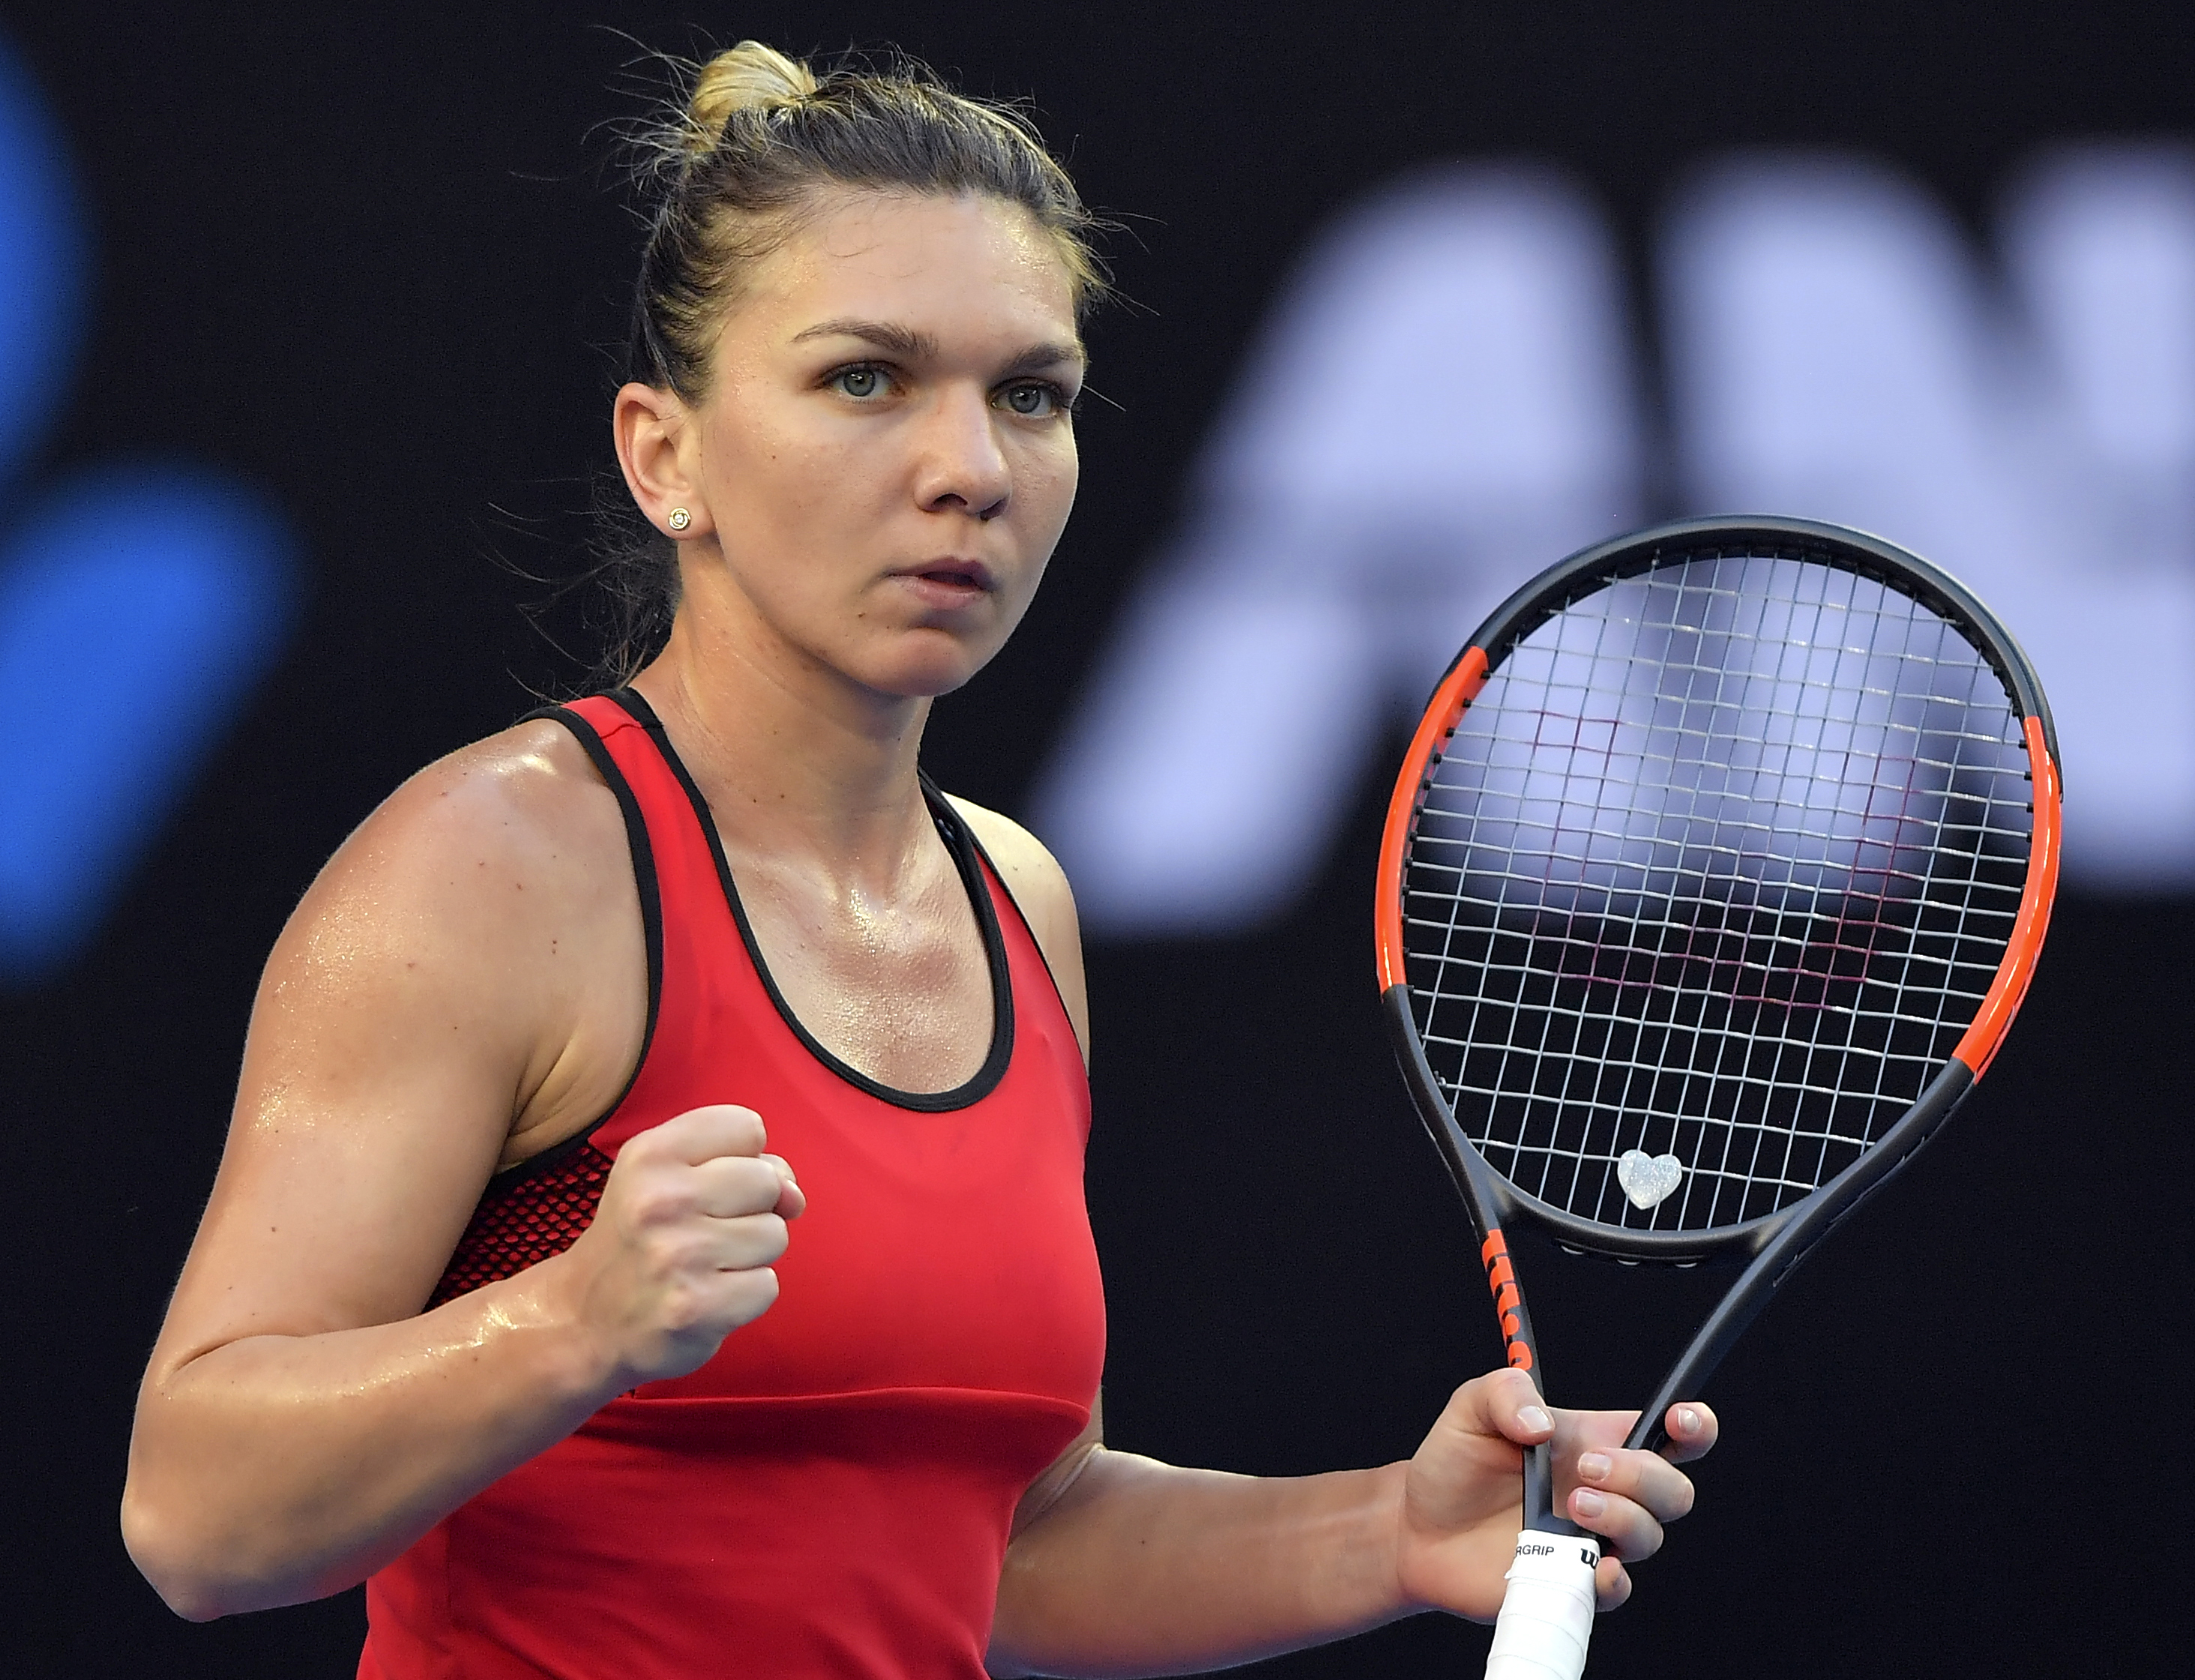 Romania's Simona Halep celebrates a point win over Canada's Eugenie Bouchard during their second round match at the Australian Open tennis championships in Melbourne, Australia, Thursday, Jan. 18, 2018. (AP Photo/Andy Brownbill)